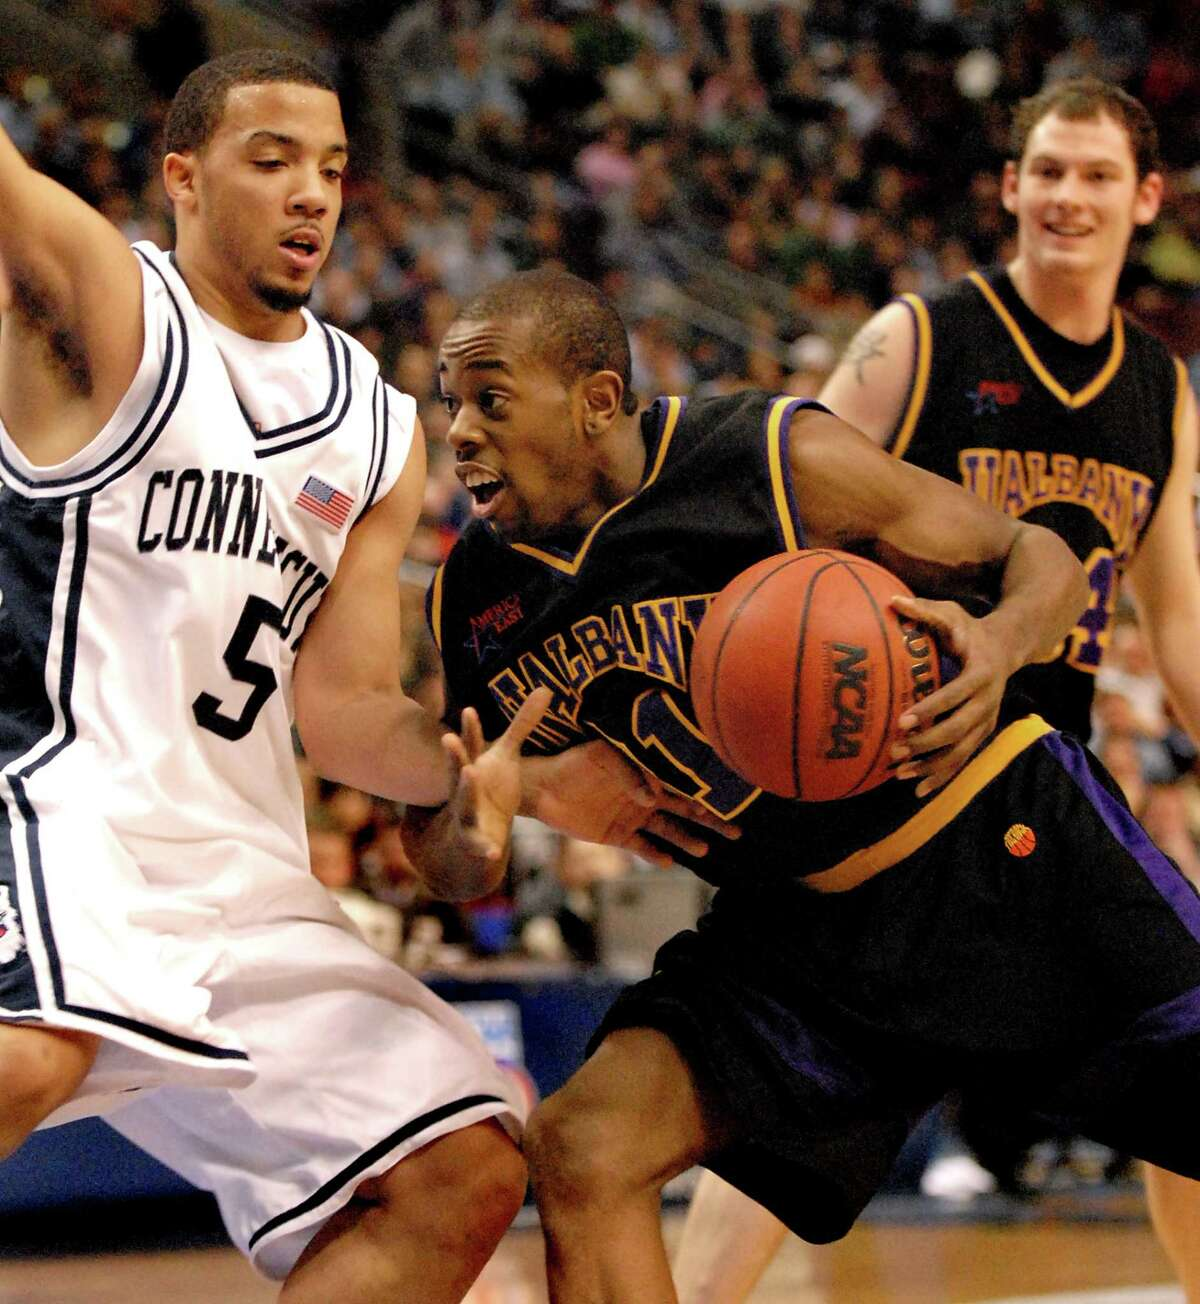 UAlbany's Jamar Wilson drives past UConn's Marcus Williams,  during their NCAA first round game on Friday, March 17, 2006, at the Wachovia Center in Philadelphia, Penn. UConn won 72-59. (Cindy Schultz / Times Union)